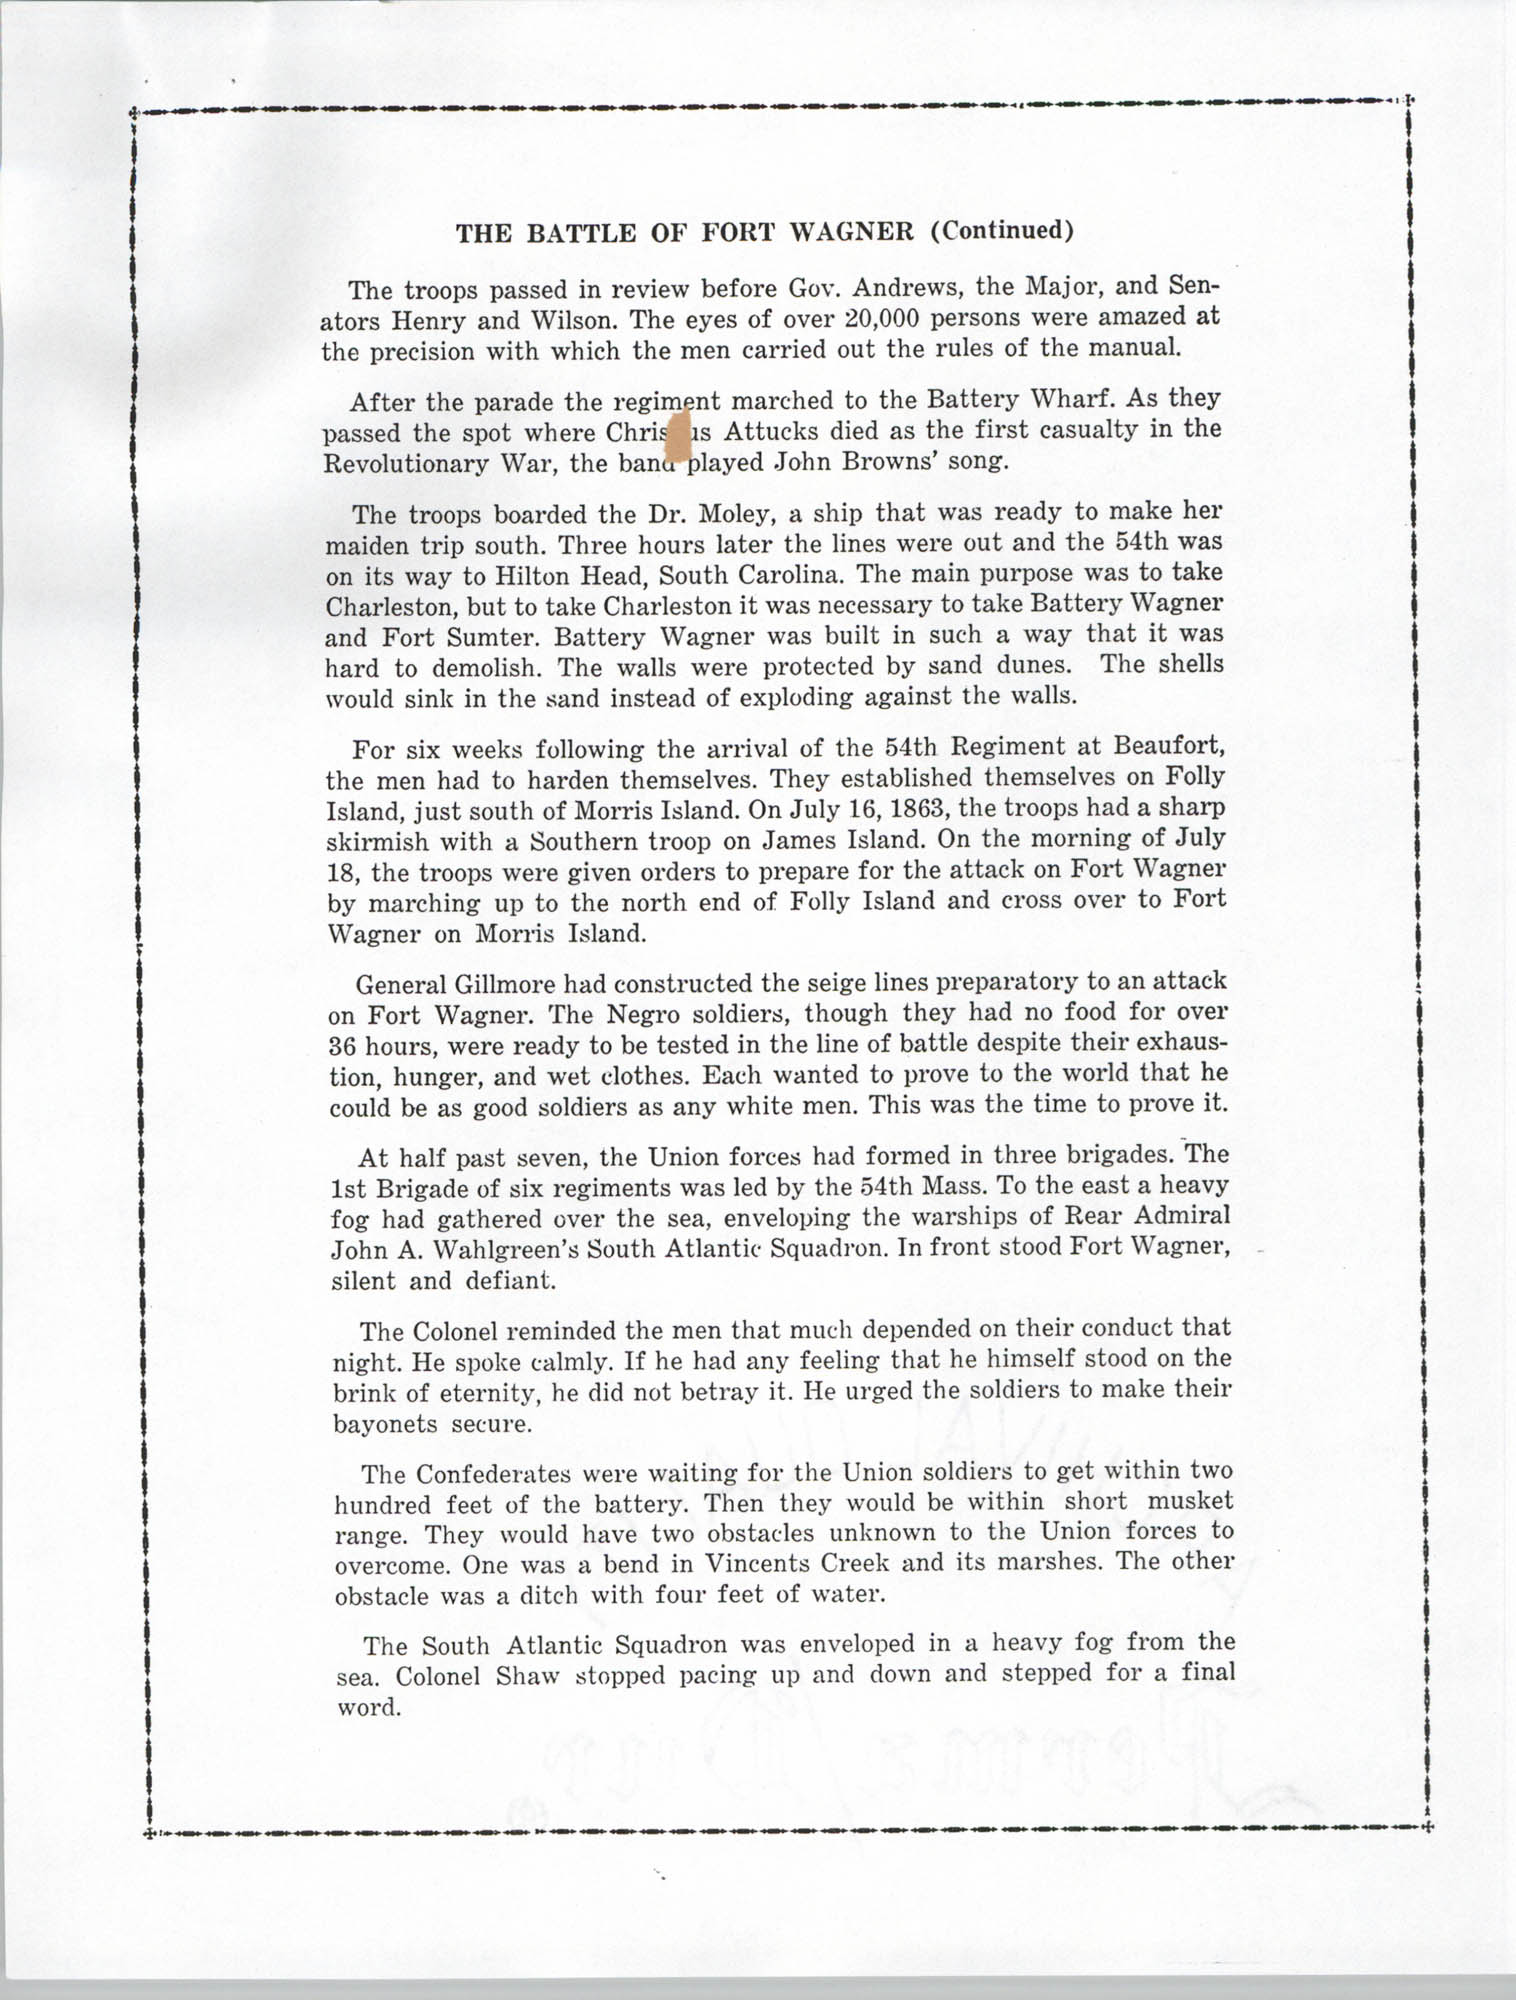 Ninety-Ninth Anniversary of the Battle of Fort Wagner Program, Page 5